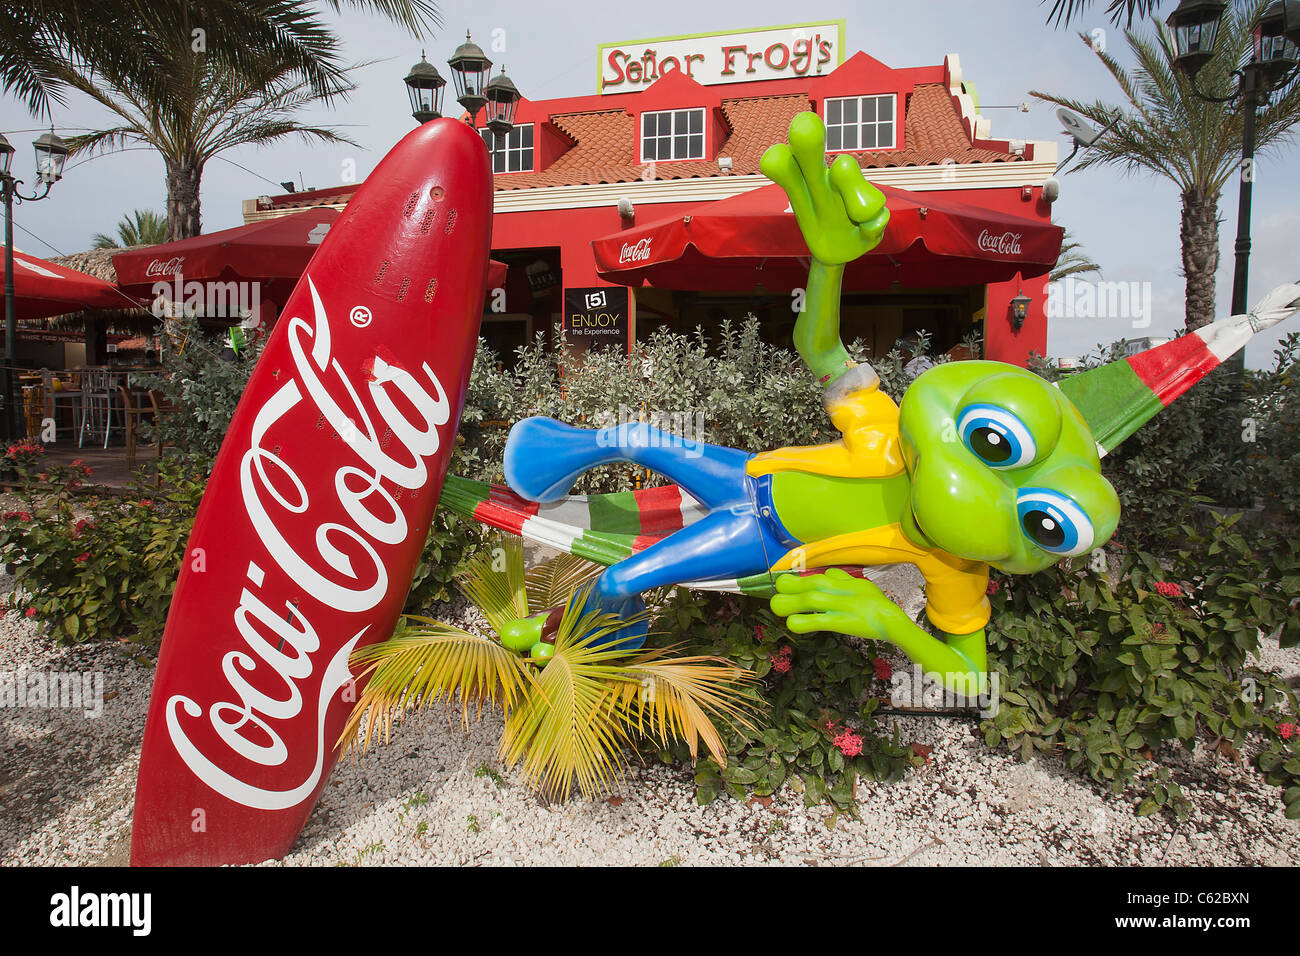 Senor Frogs restaurant, bar and grill at the south beach plaza, palm beach, Aruba, Dutch Caribbean - Stock Image